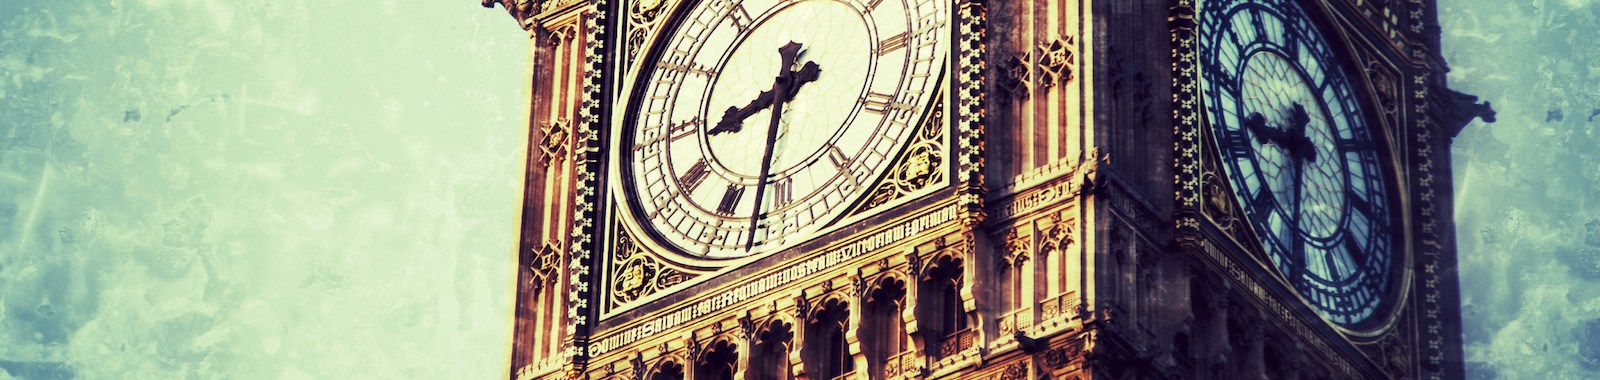 Big Ben in Central London in grunge style